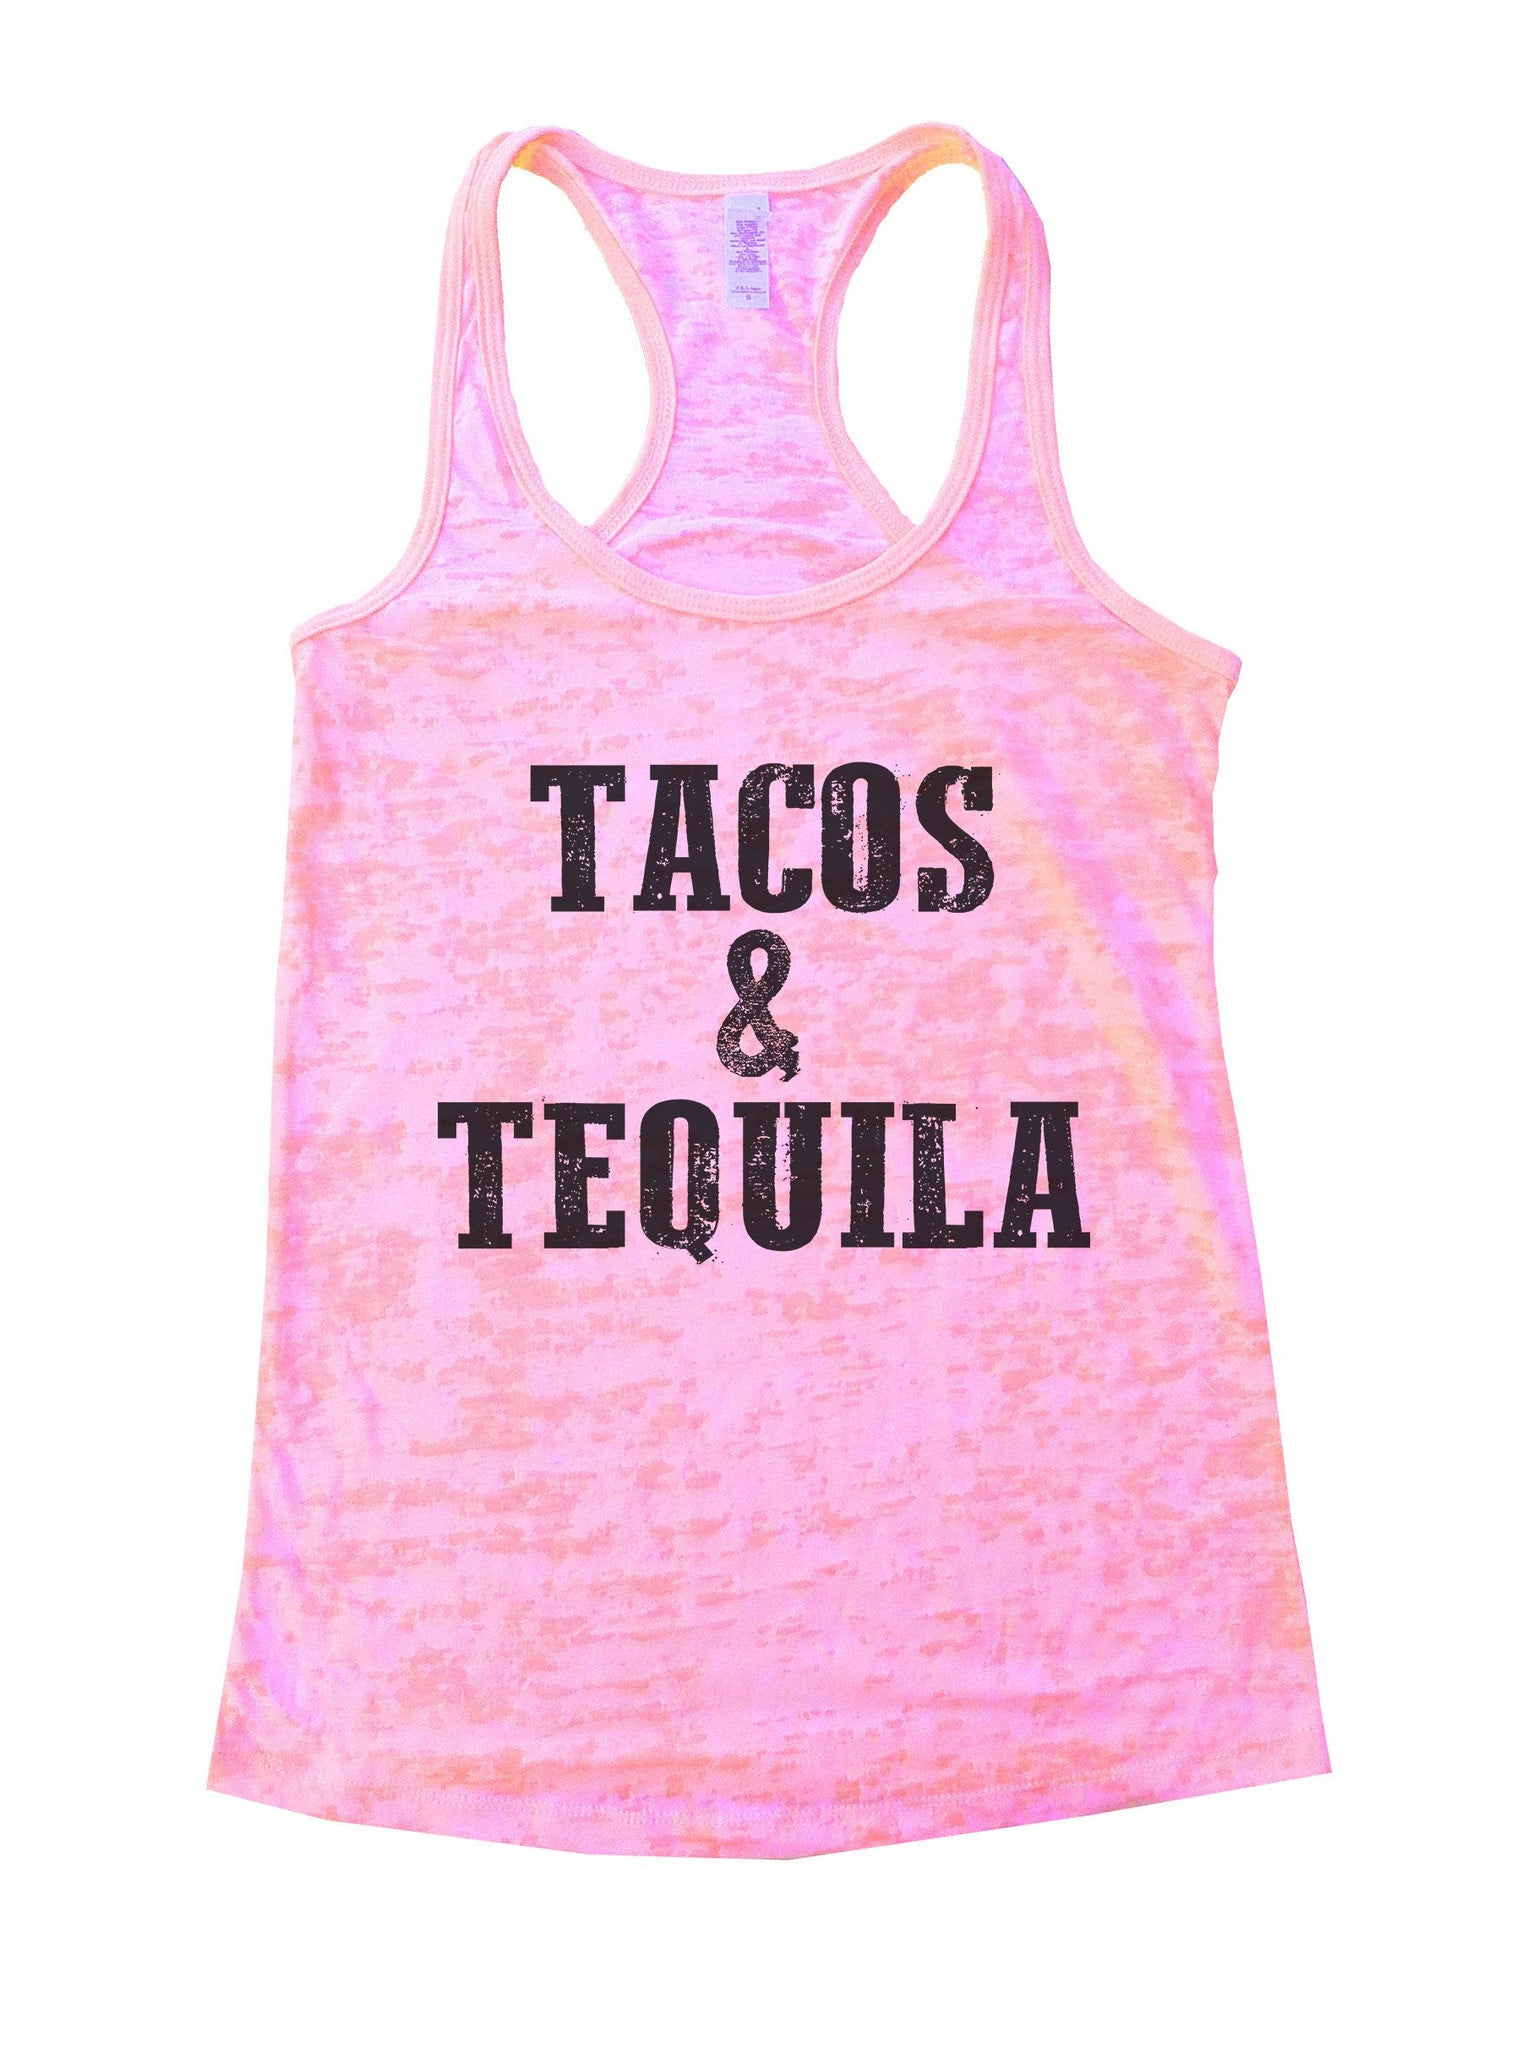 Tacos & Tequila Burnout Tank Top By BurnoutTankTops.com - 1103 - Funny Shirts Tank Tops Burnouts and Triblends  - 2